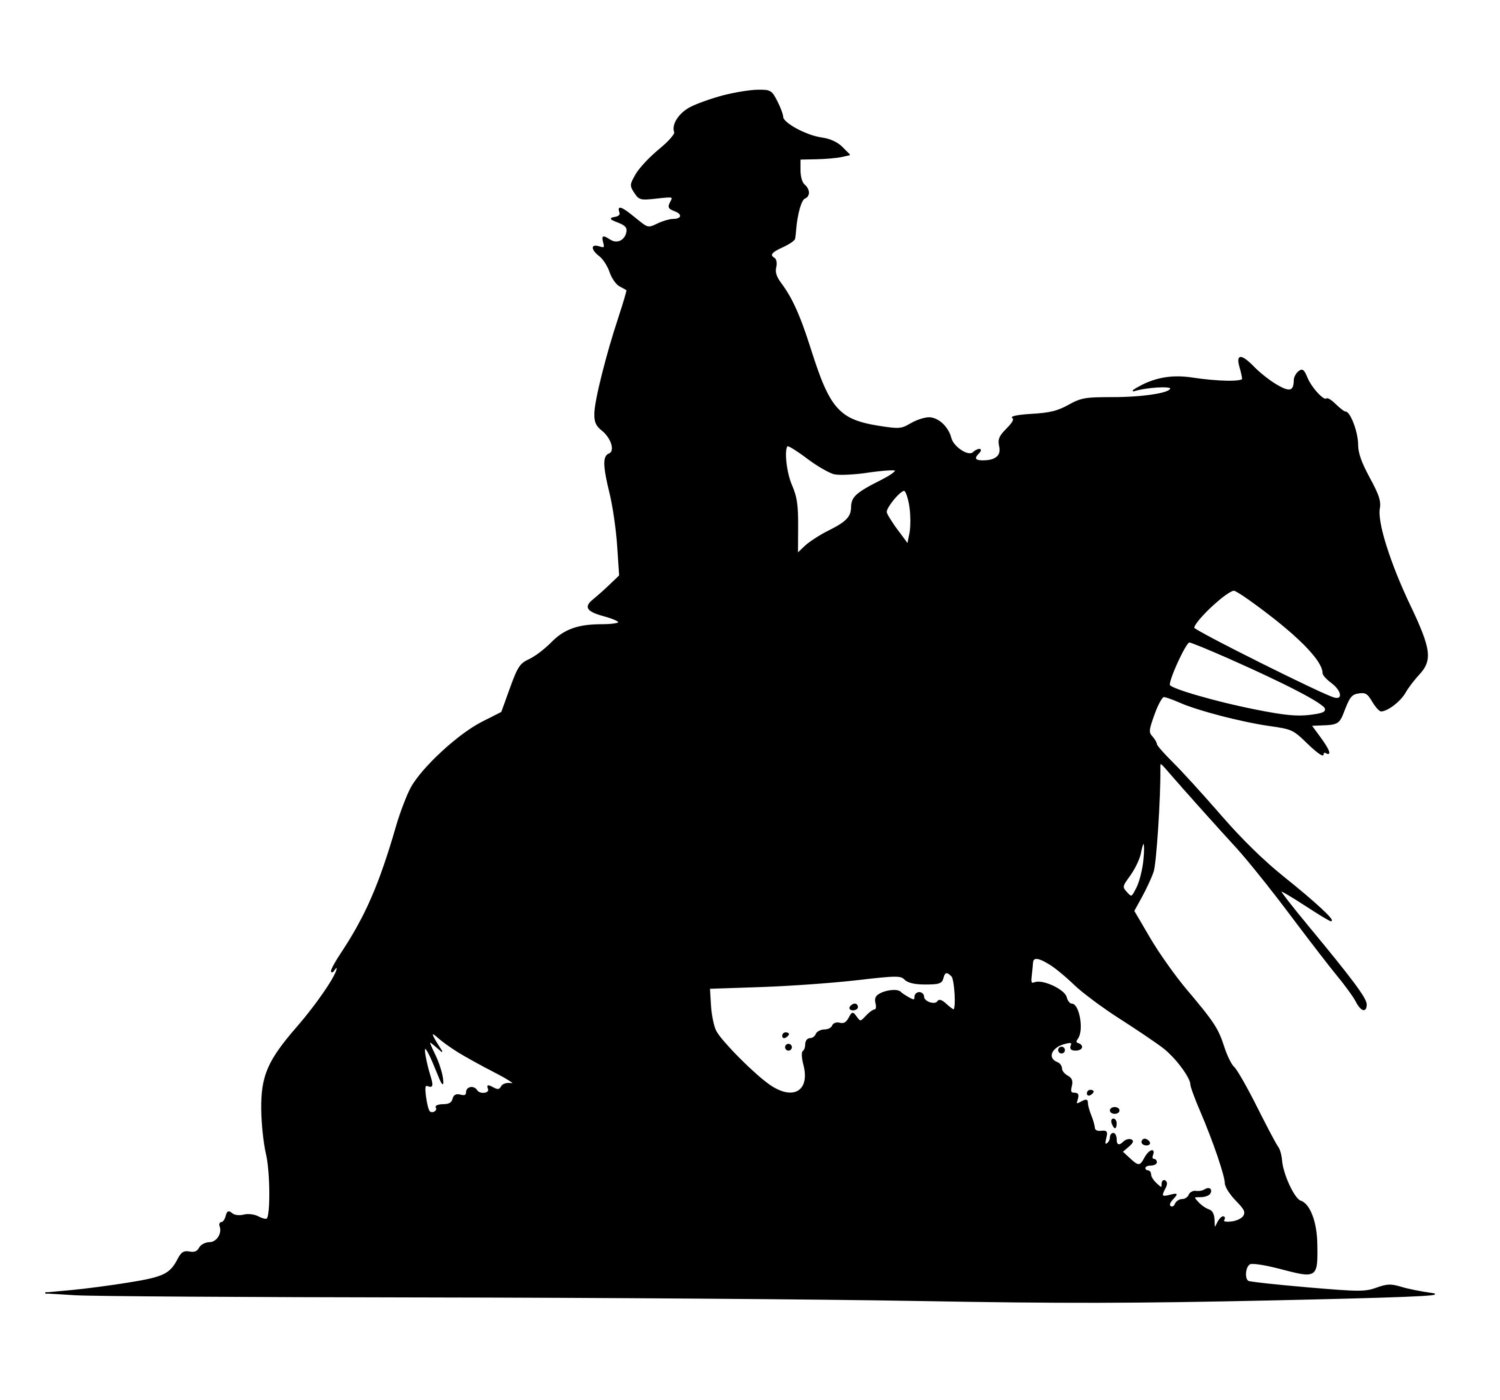 Free Reining Horse Silhouette, Download Free Clip Art, Free Clip Art.